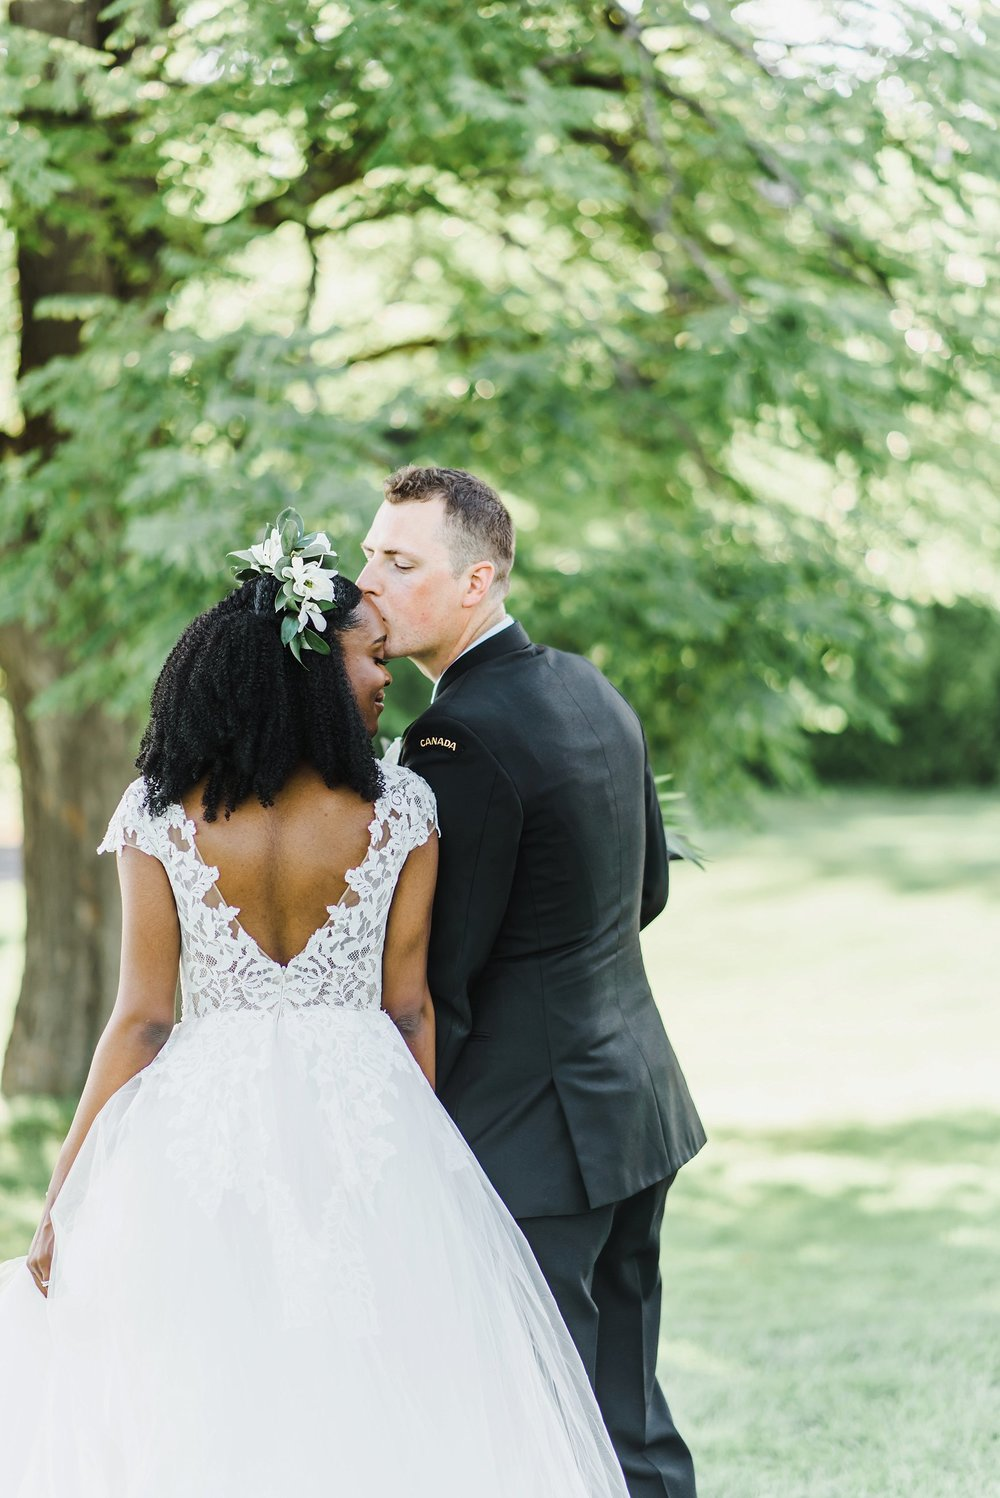 light airy indie fine art ottawa wedding photographer | Ali and Batoul Photography_1007.jpg